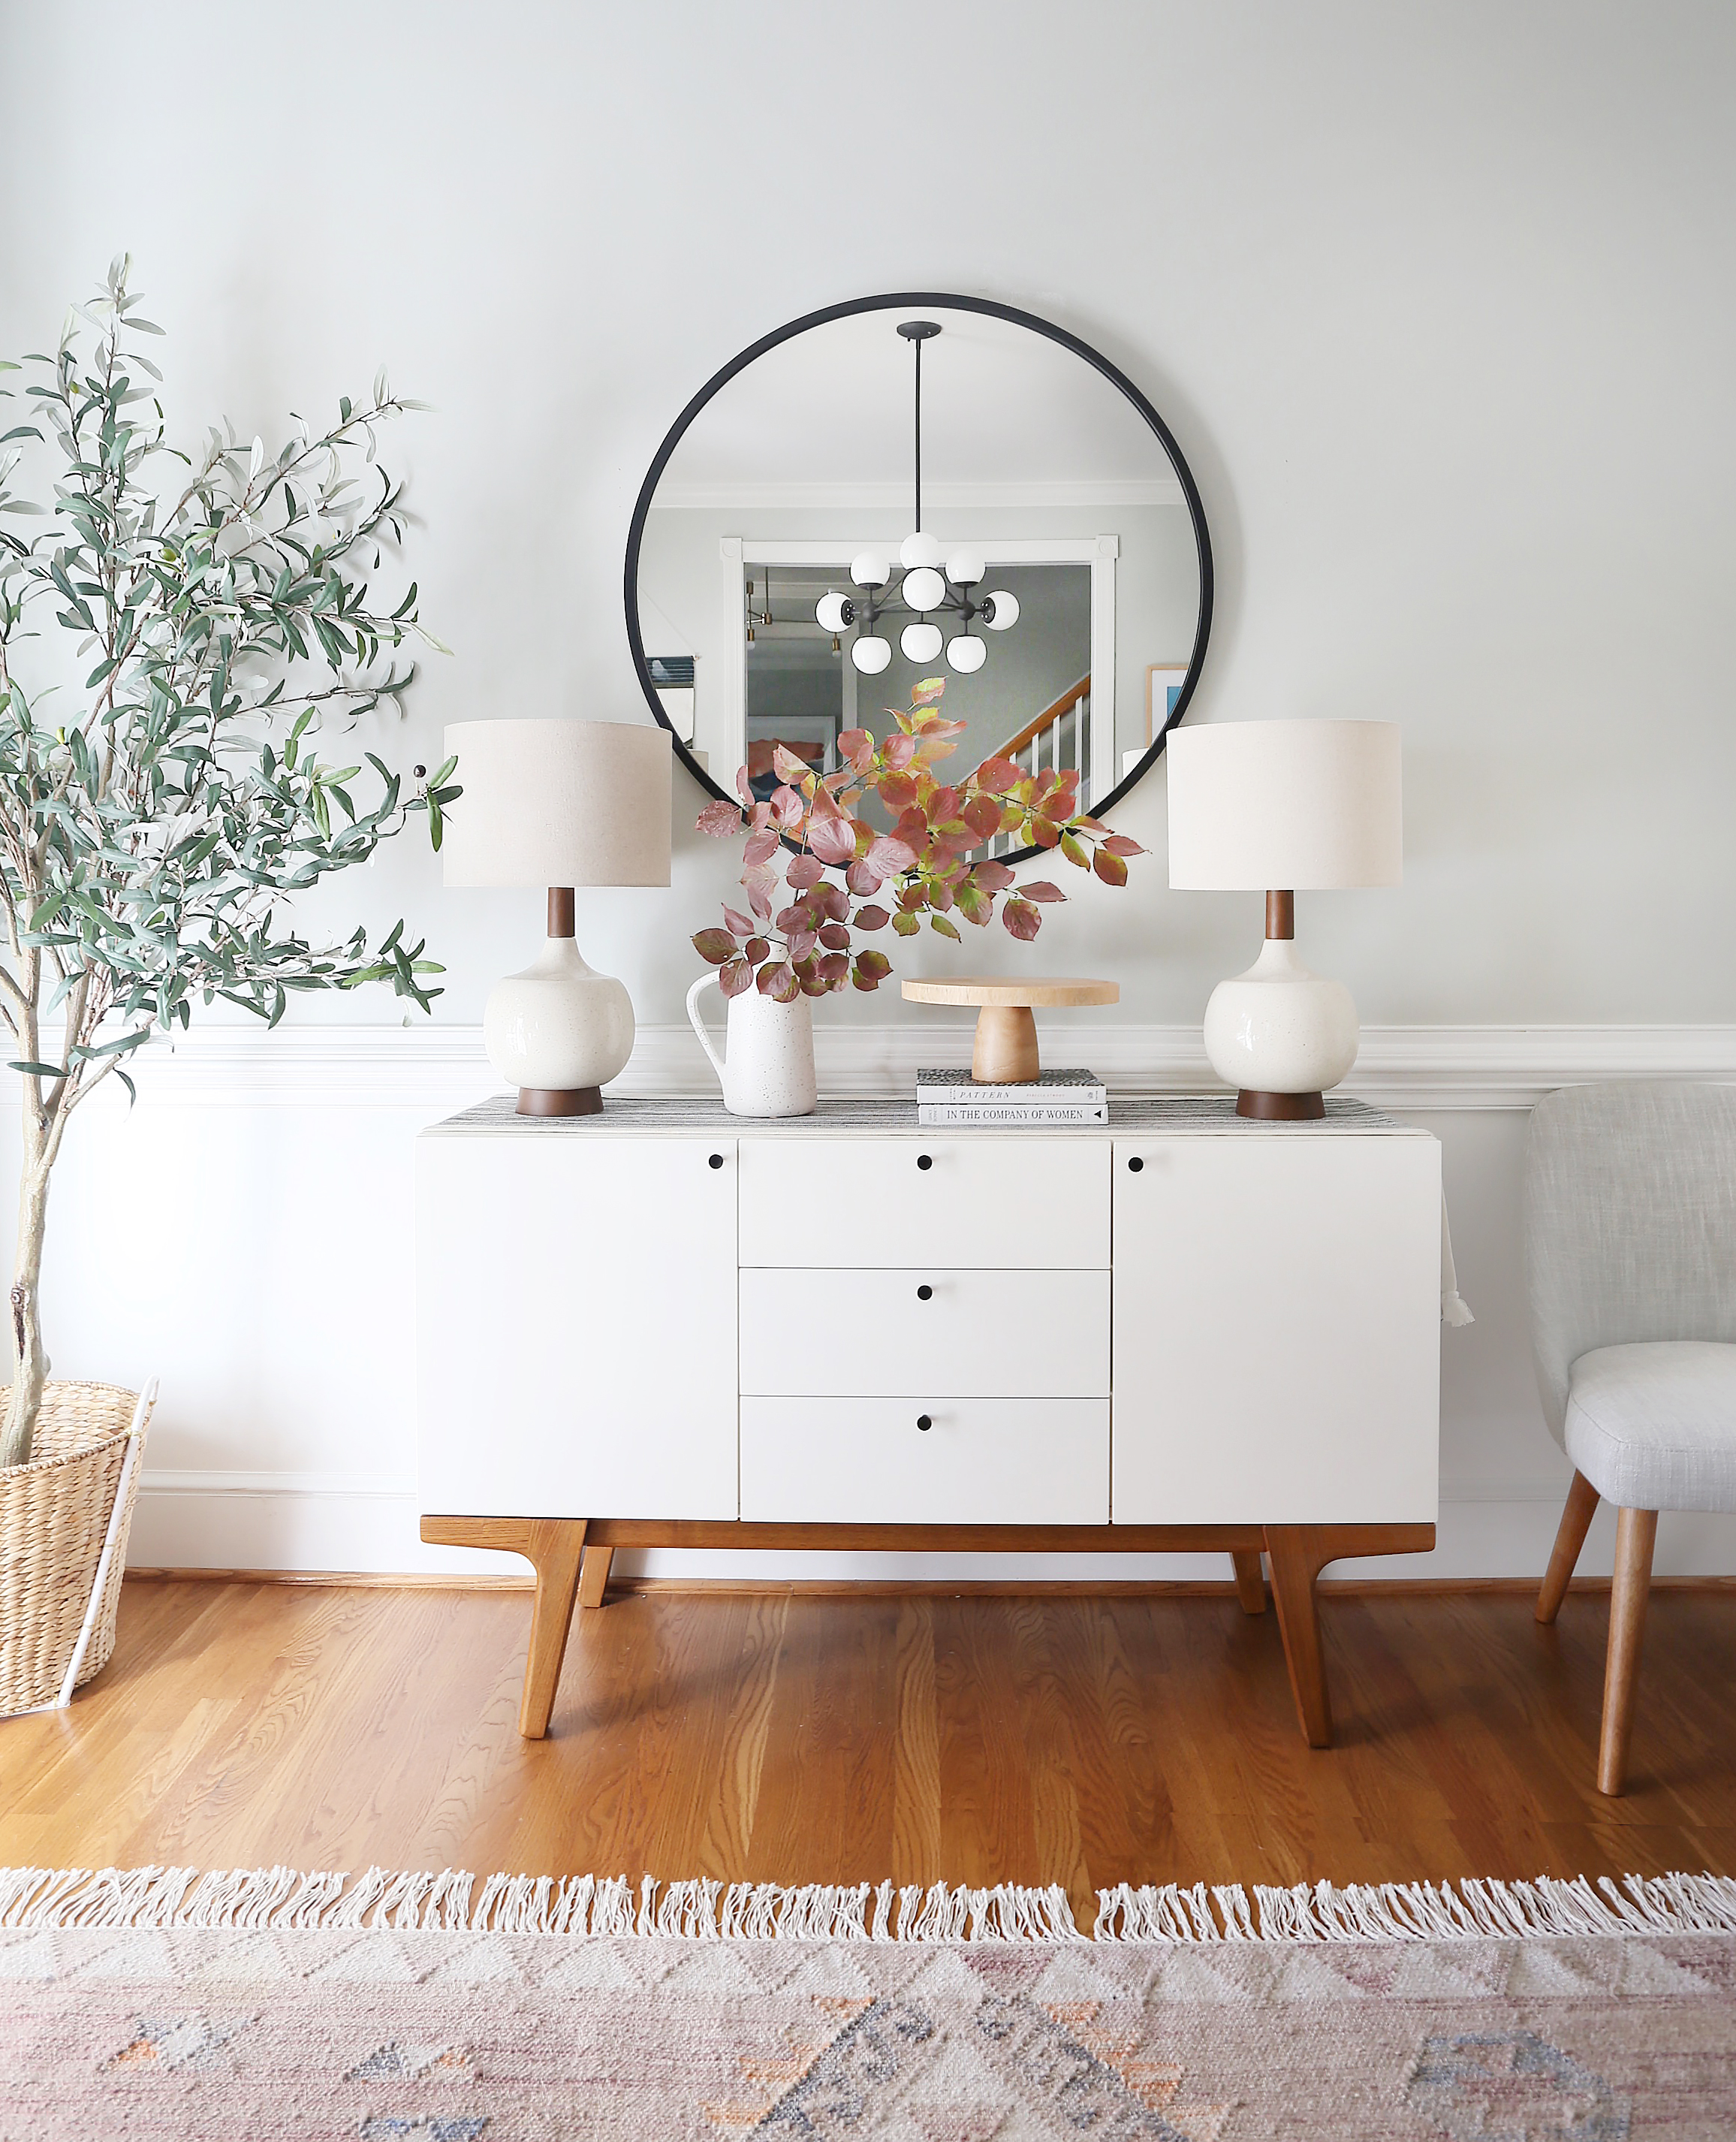 Olive tree   /   Rug   /   Console   /   Table lamp   /   Vase   /   Cake stand   (similar) /   Chair   /   Mirror